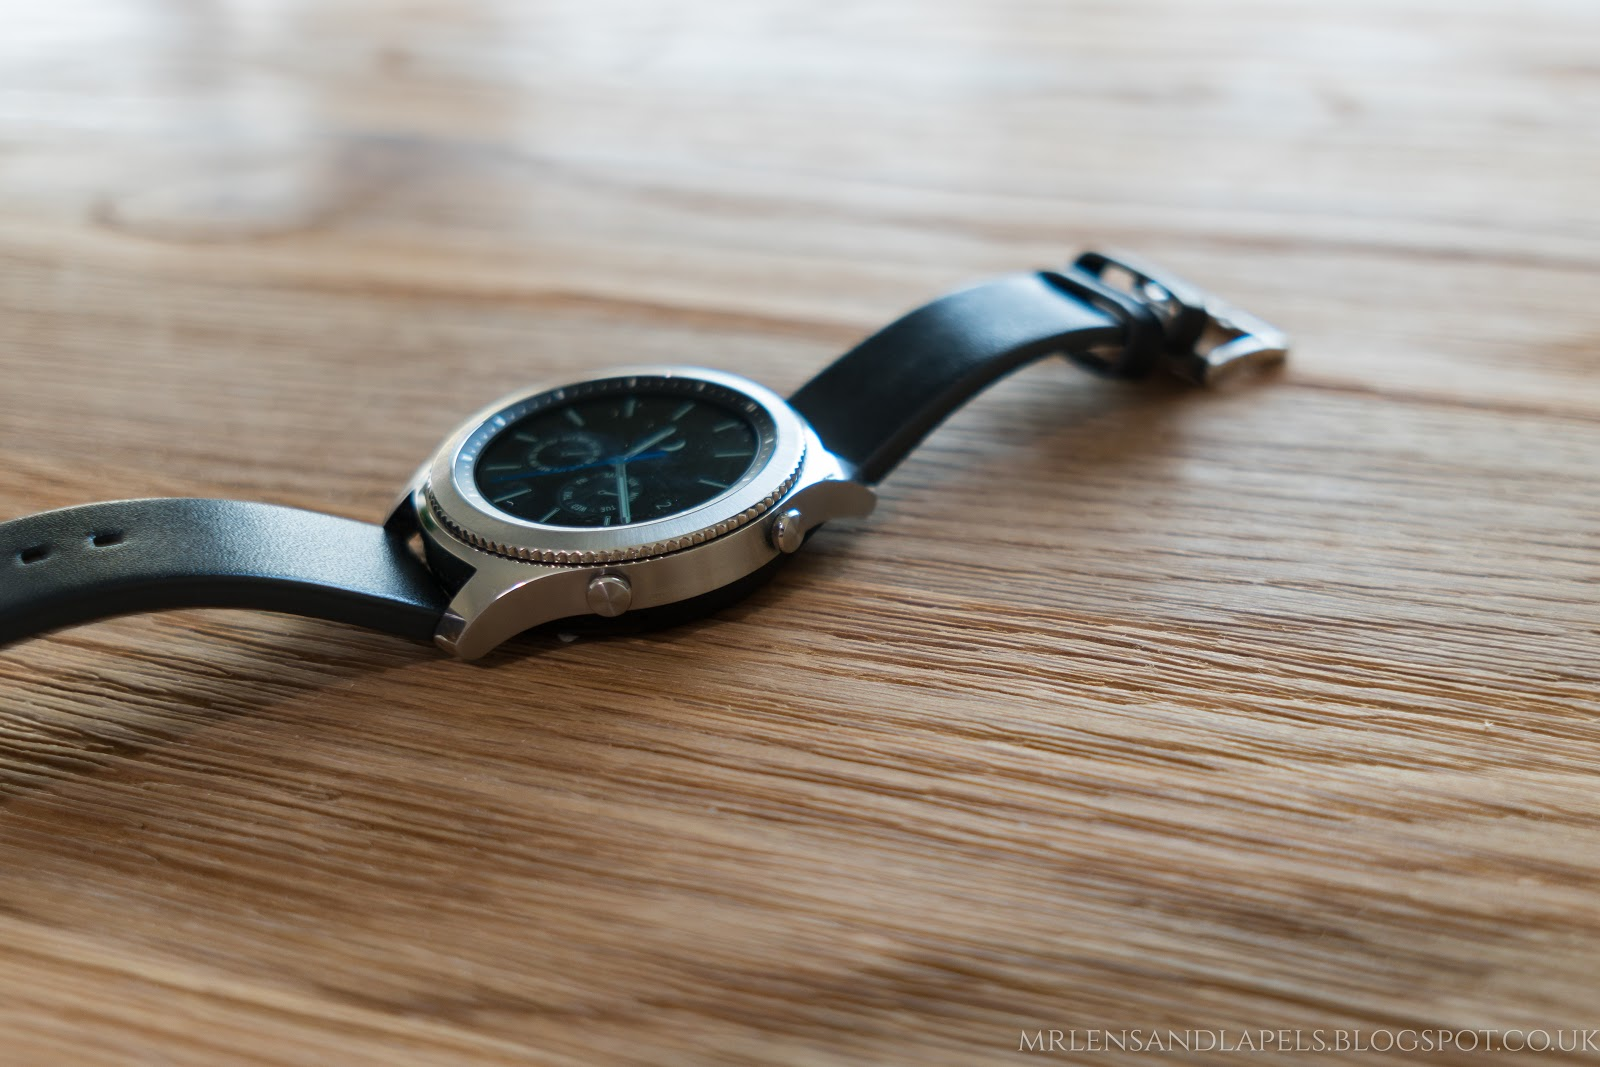 Samsung Gear S3 review design